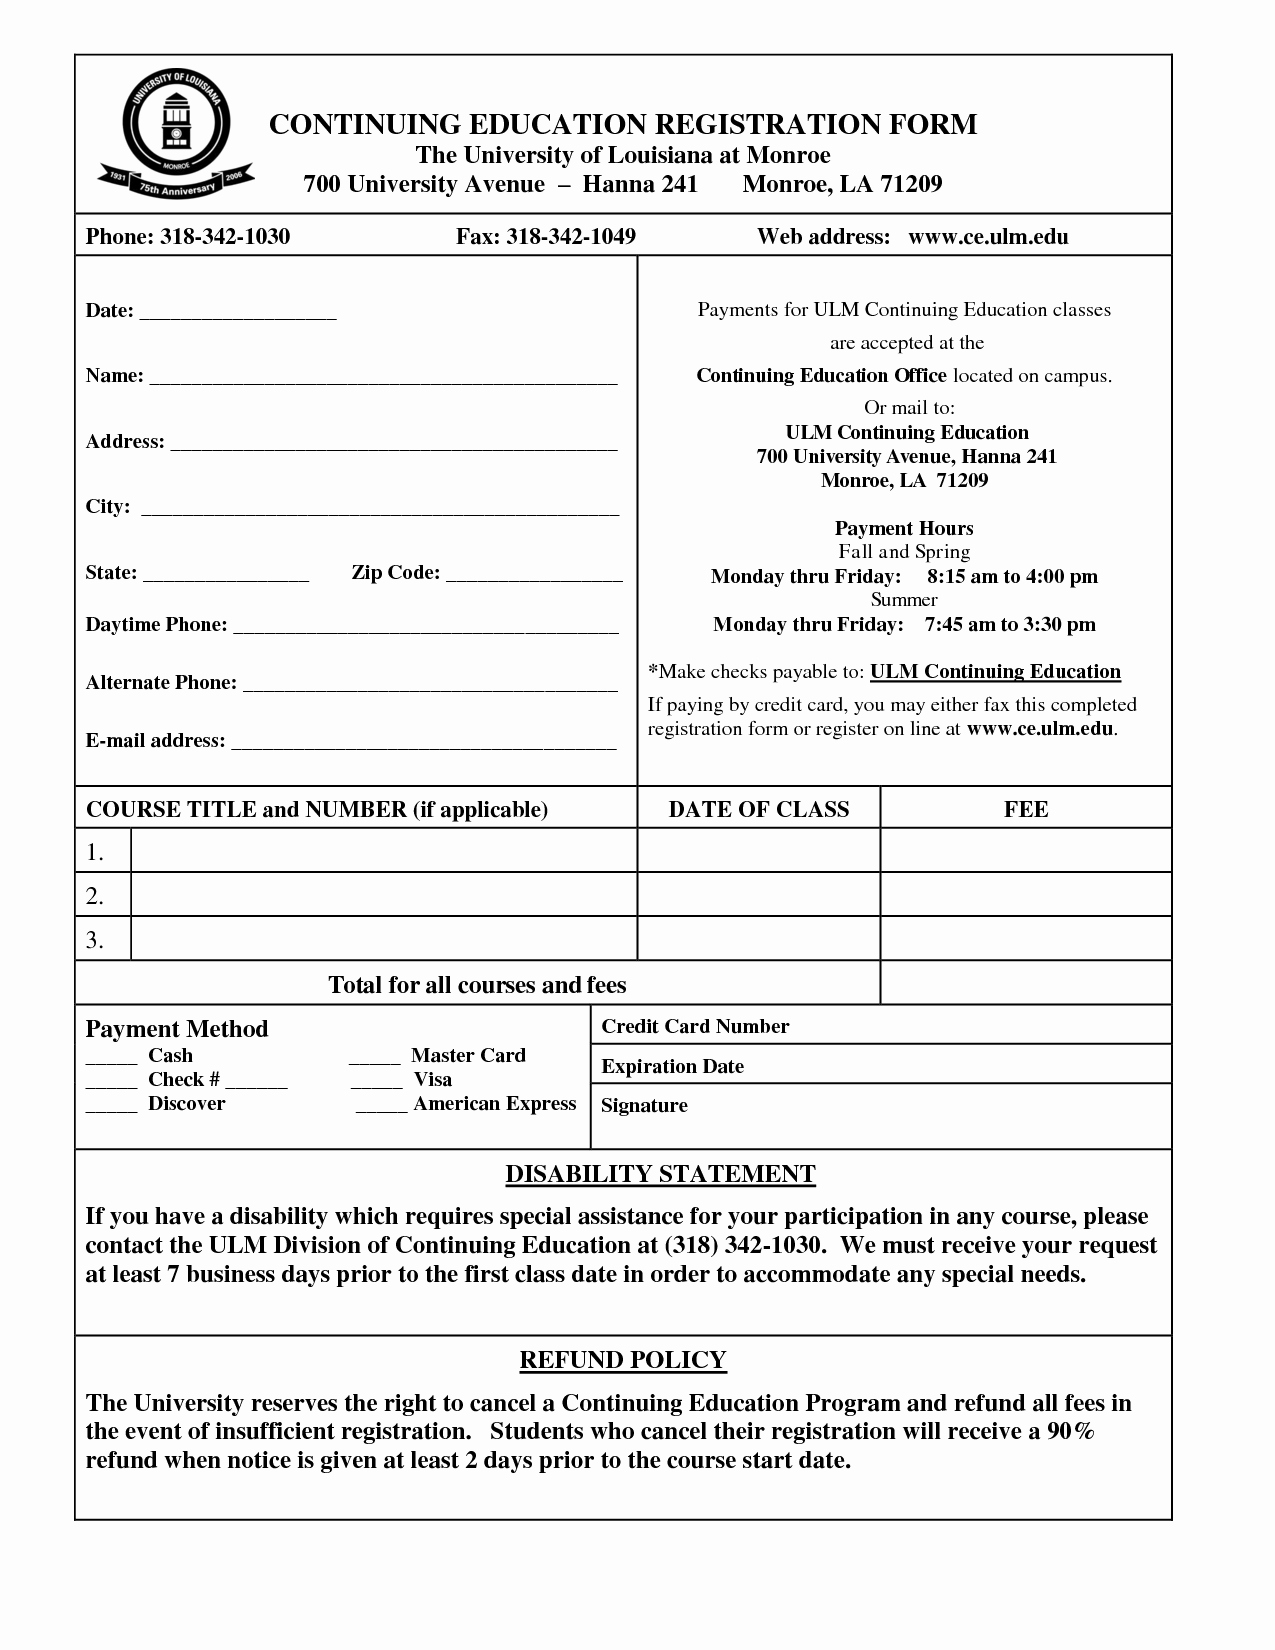 Registration form Template Word Unique Student Application form Template Portablegasgrillweber